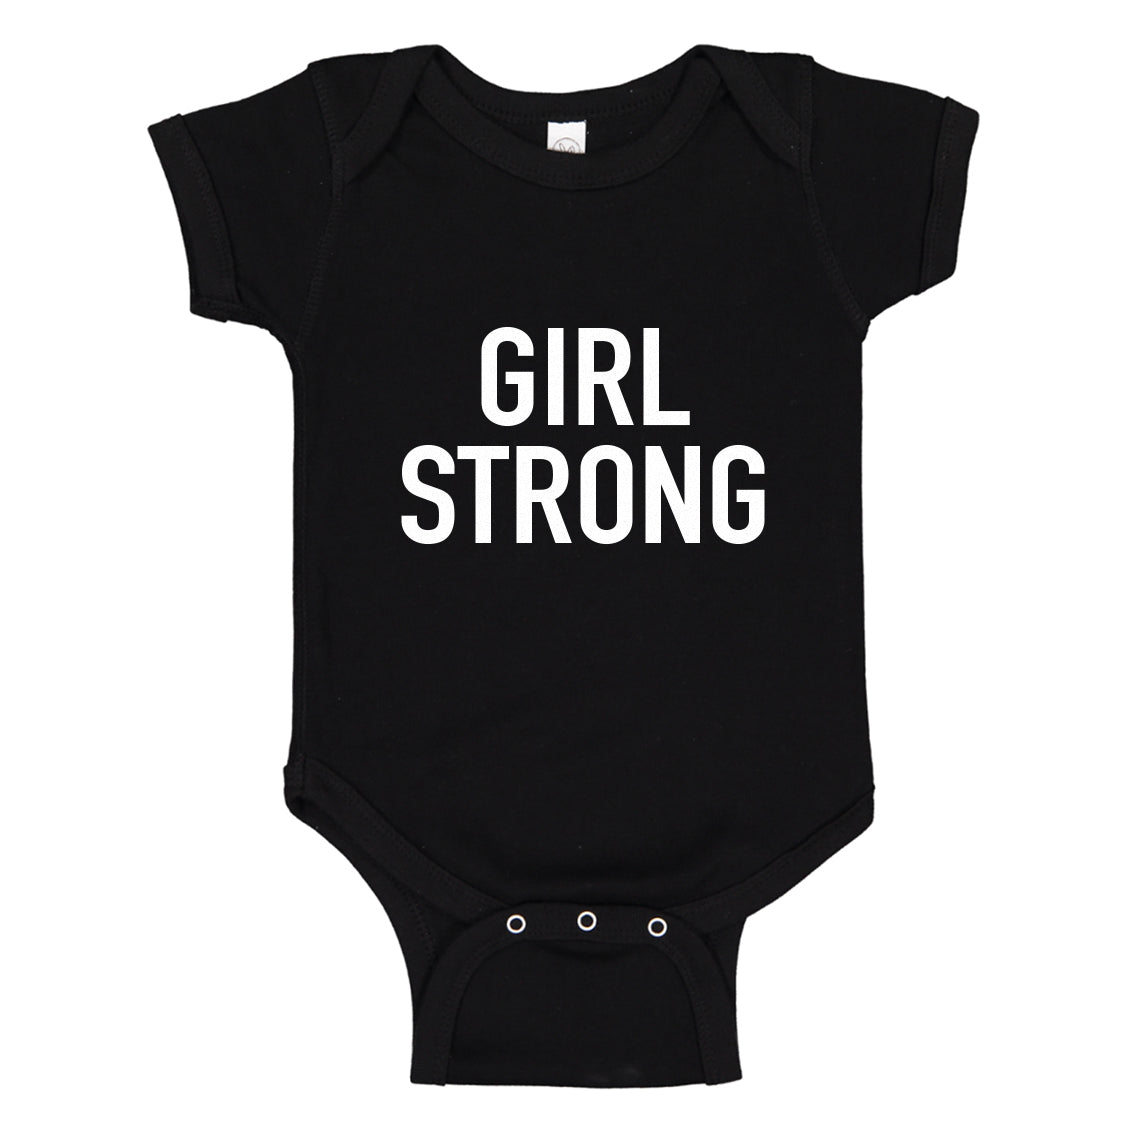 Baby Onesie Girl Strong 100% Cotton Infant Bodysuit